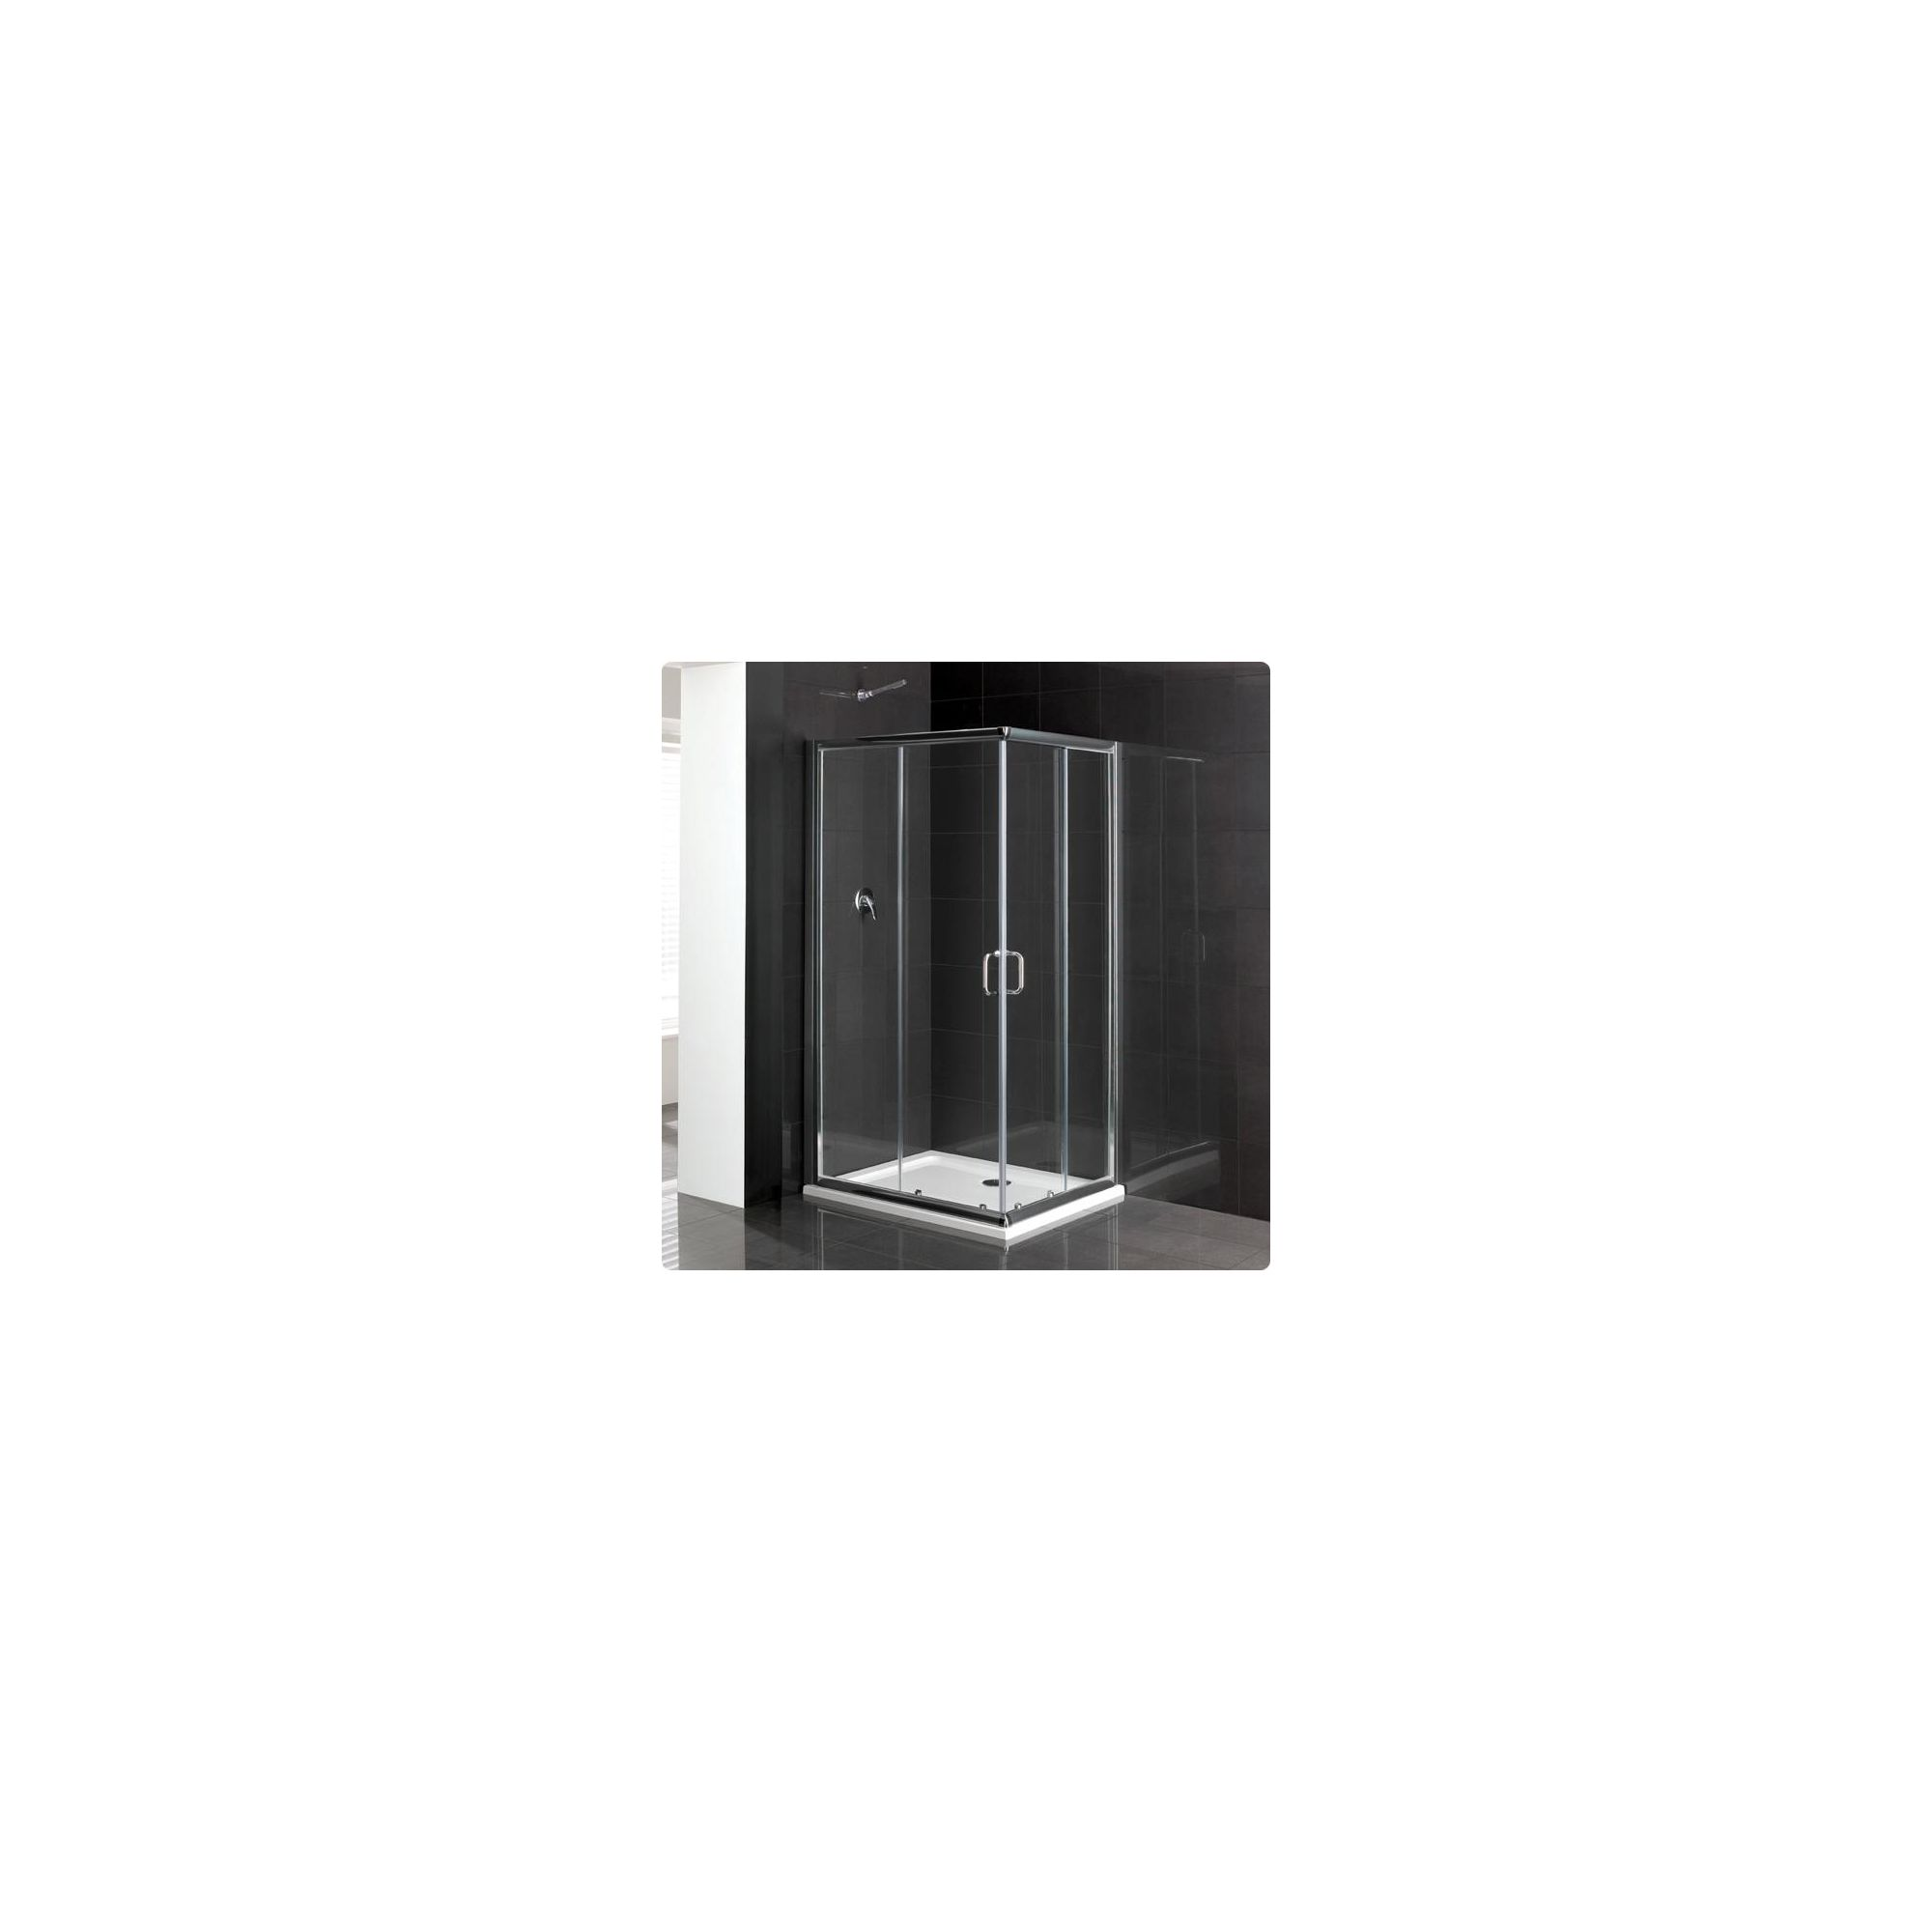 Duchy Elite Silver Offset Corner Entry Shower Enclosure 1000mm x 800mm, Standard Tray, 6mm Glass at Tesco Direct